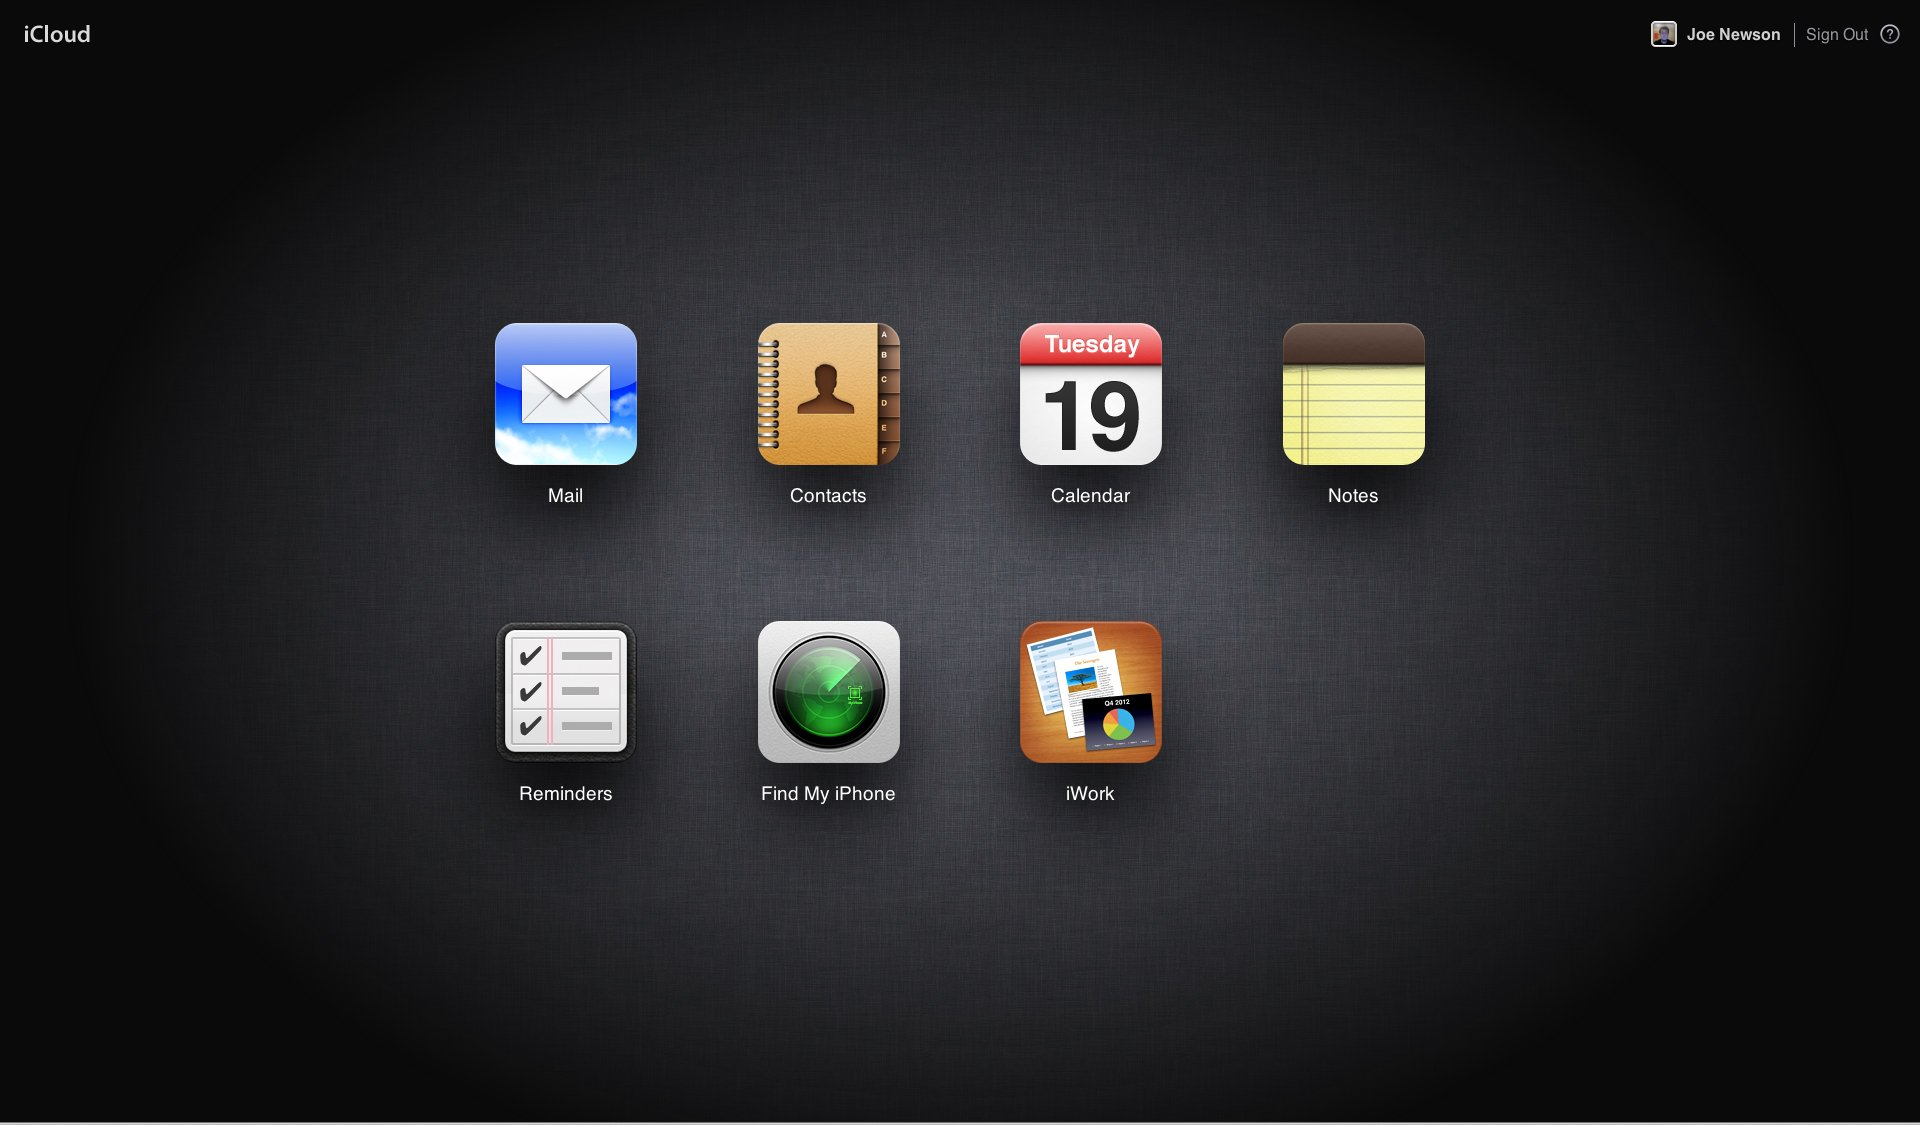 A Screenshot of Apple's iCloud Desktop Interface